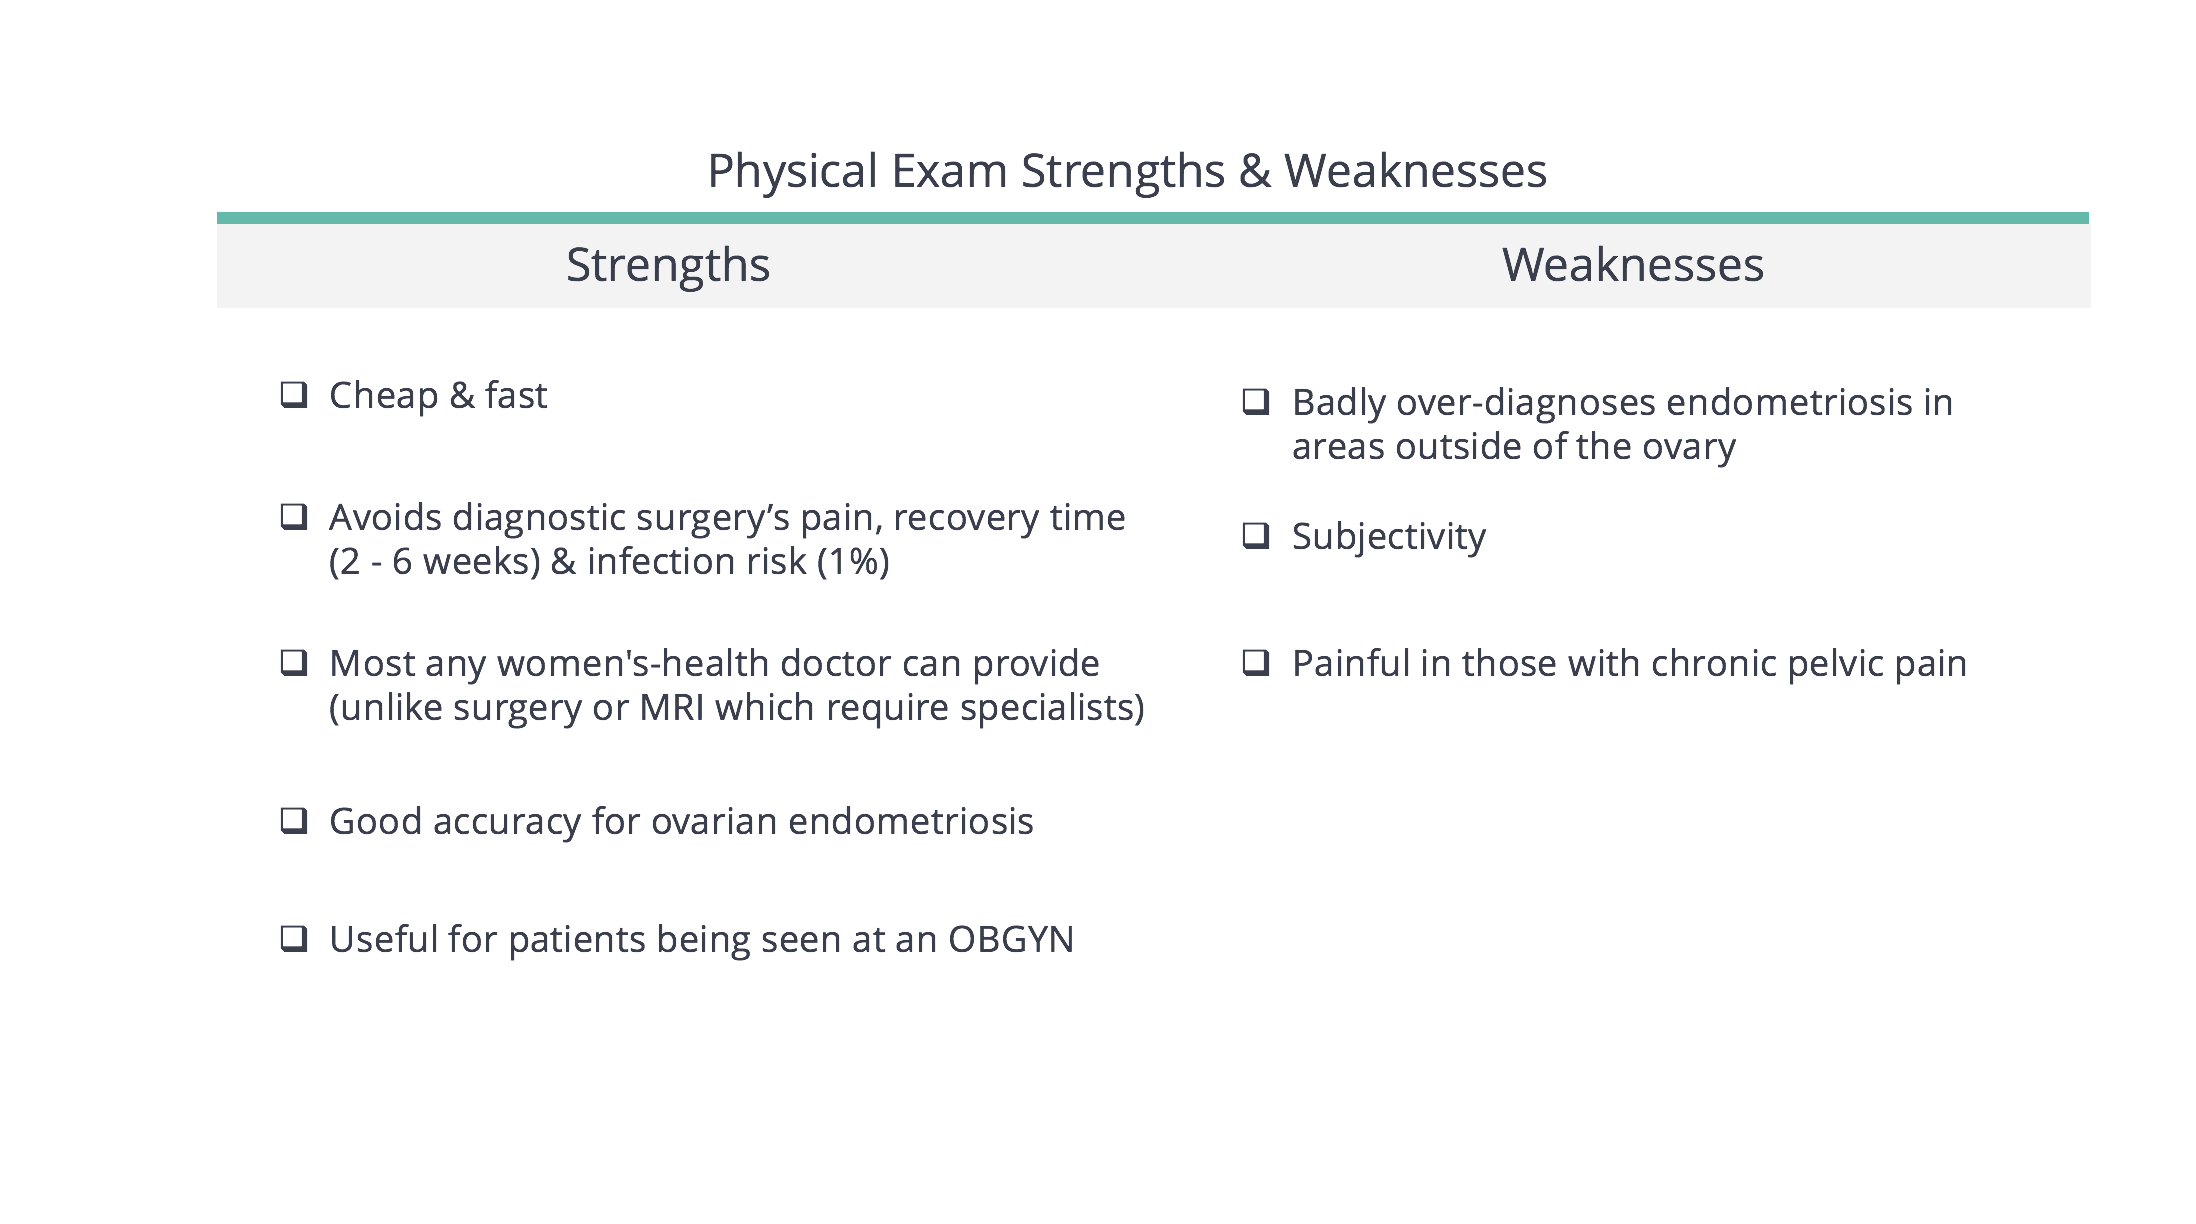 Diagnosing Endometriosis With A Physical Exam - strengths and weaknesses